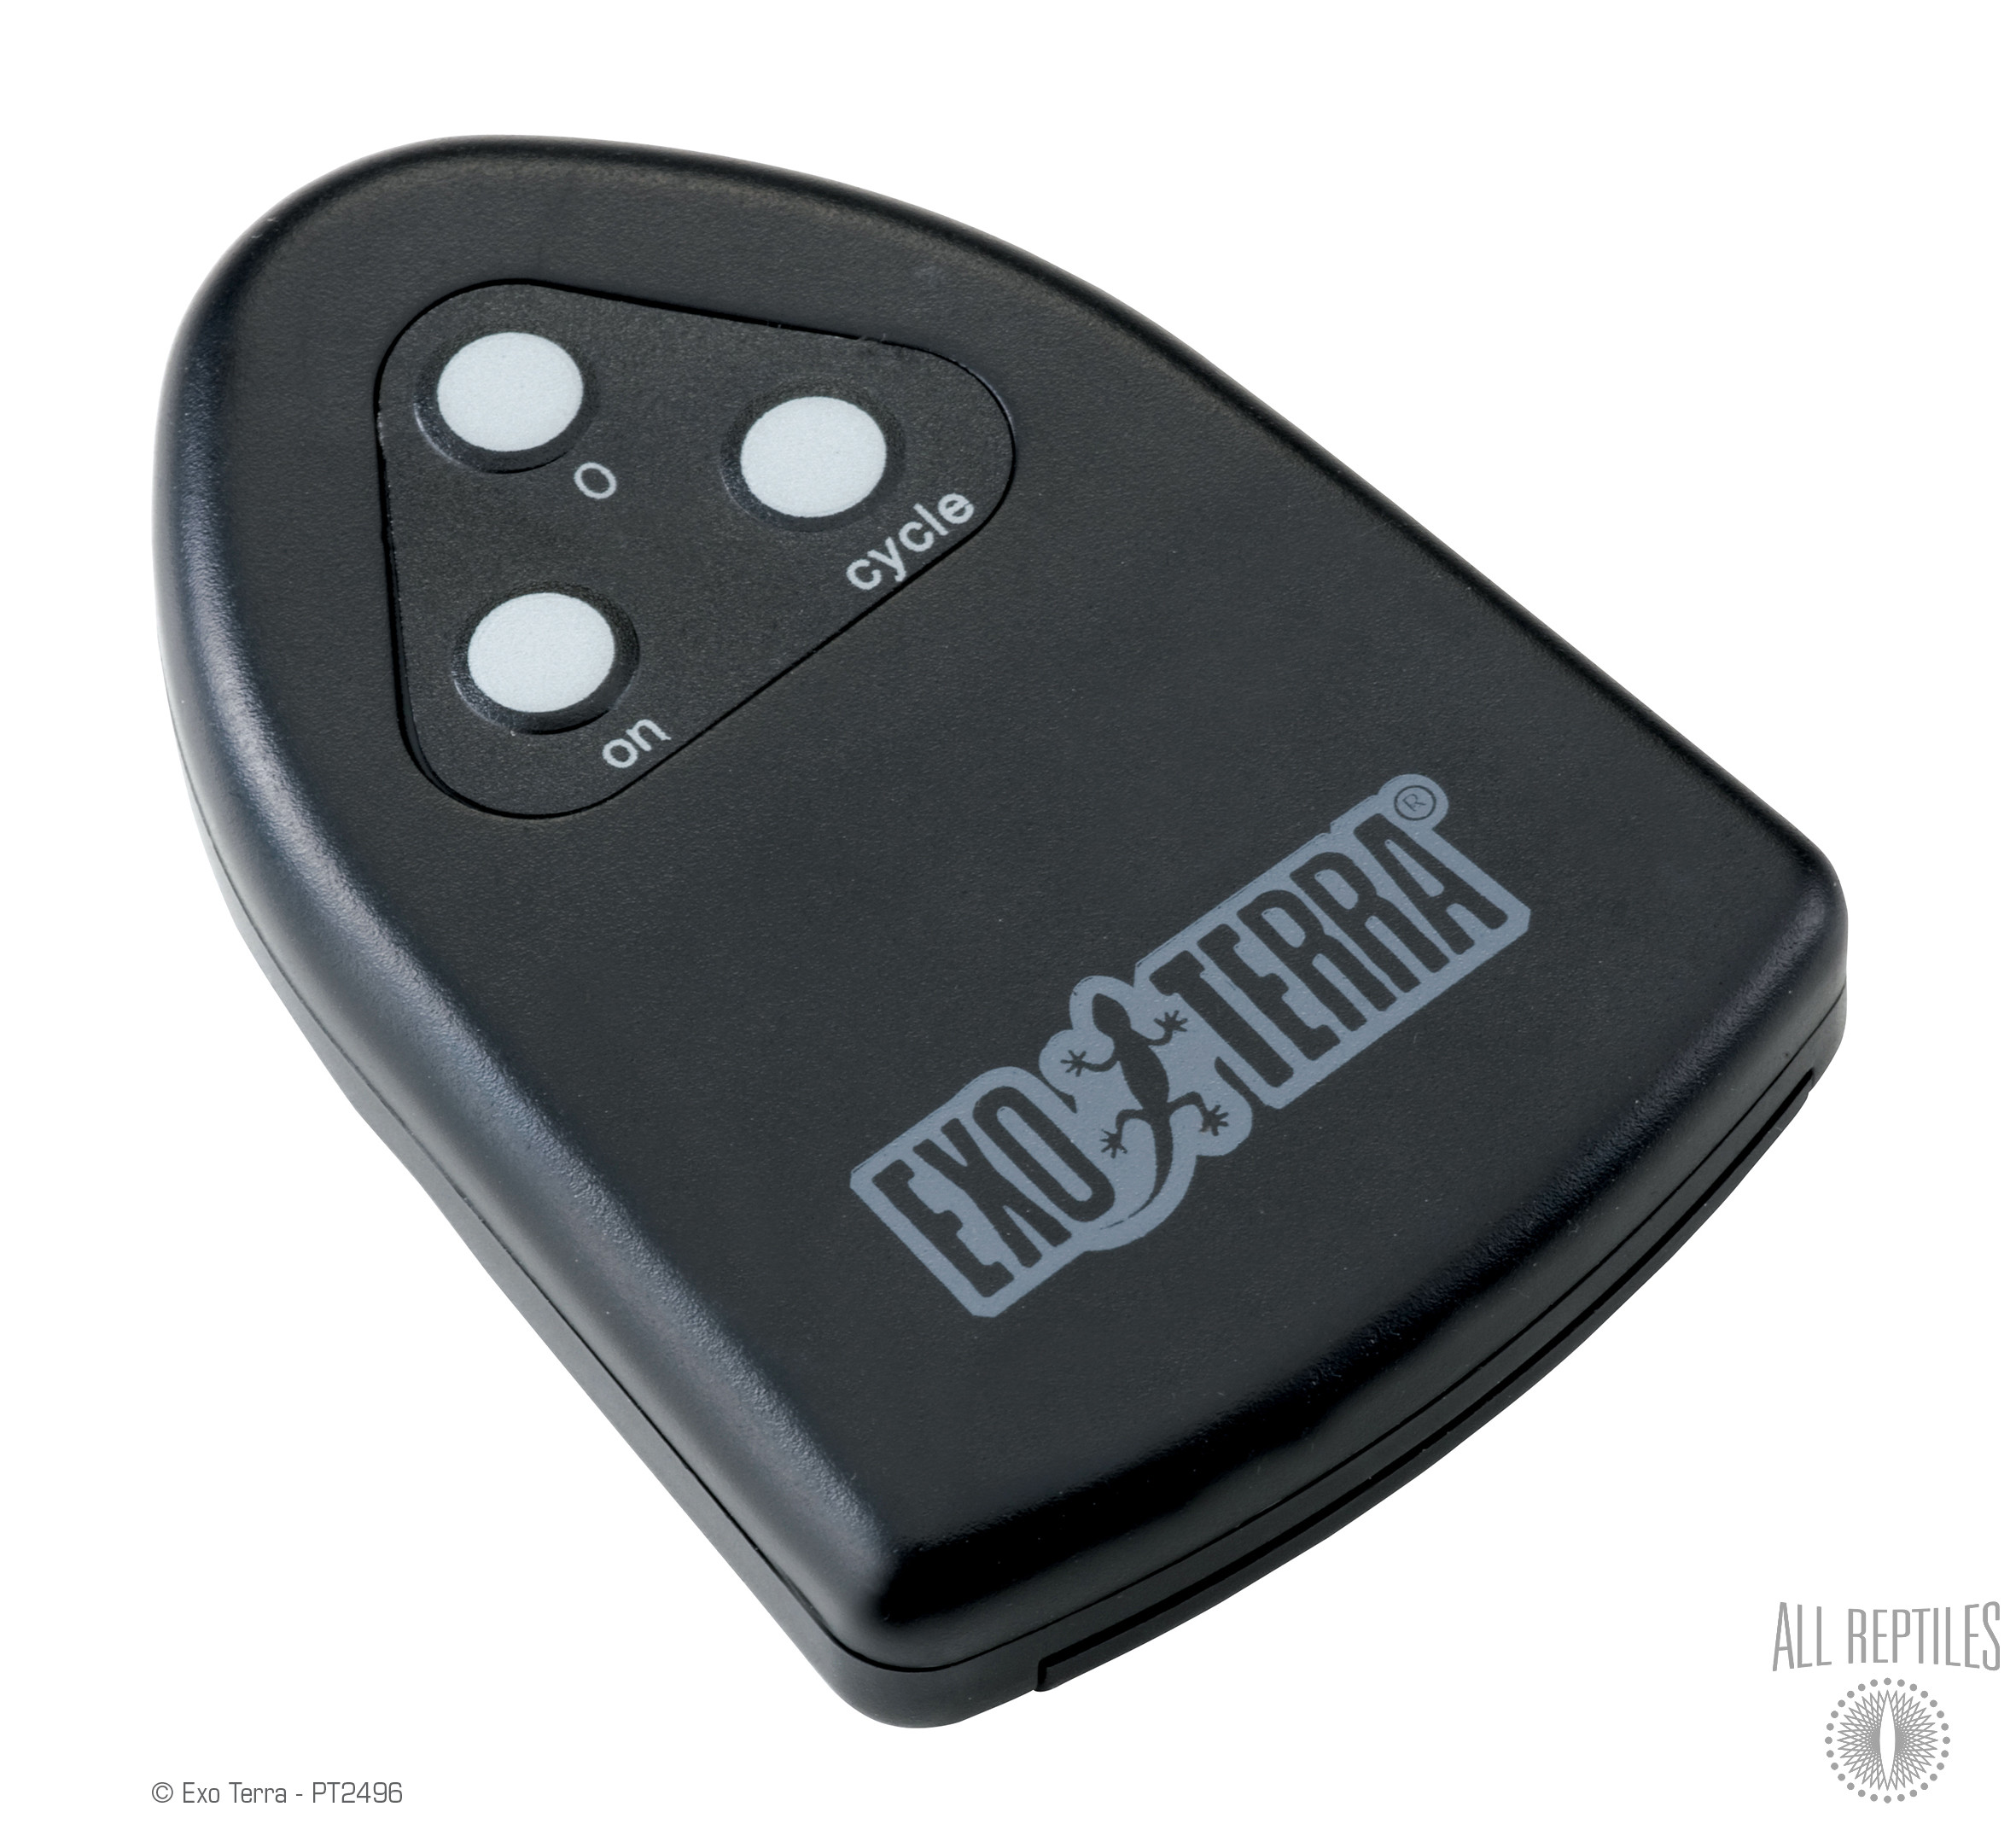 Exo Terra Monsoon RS400 Remote Control